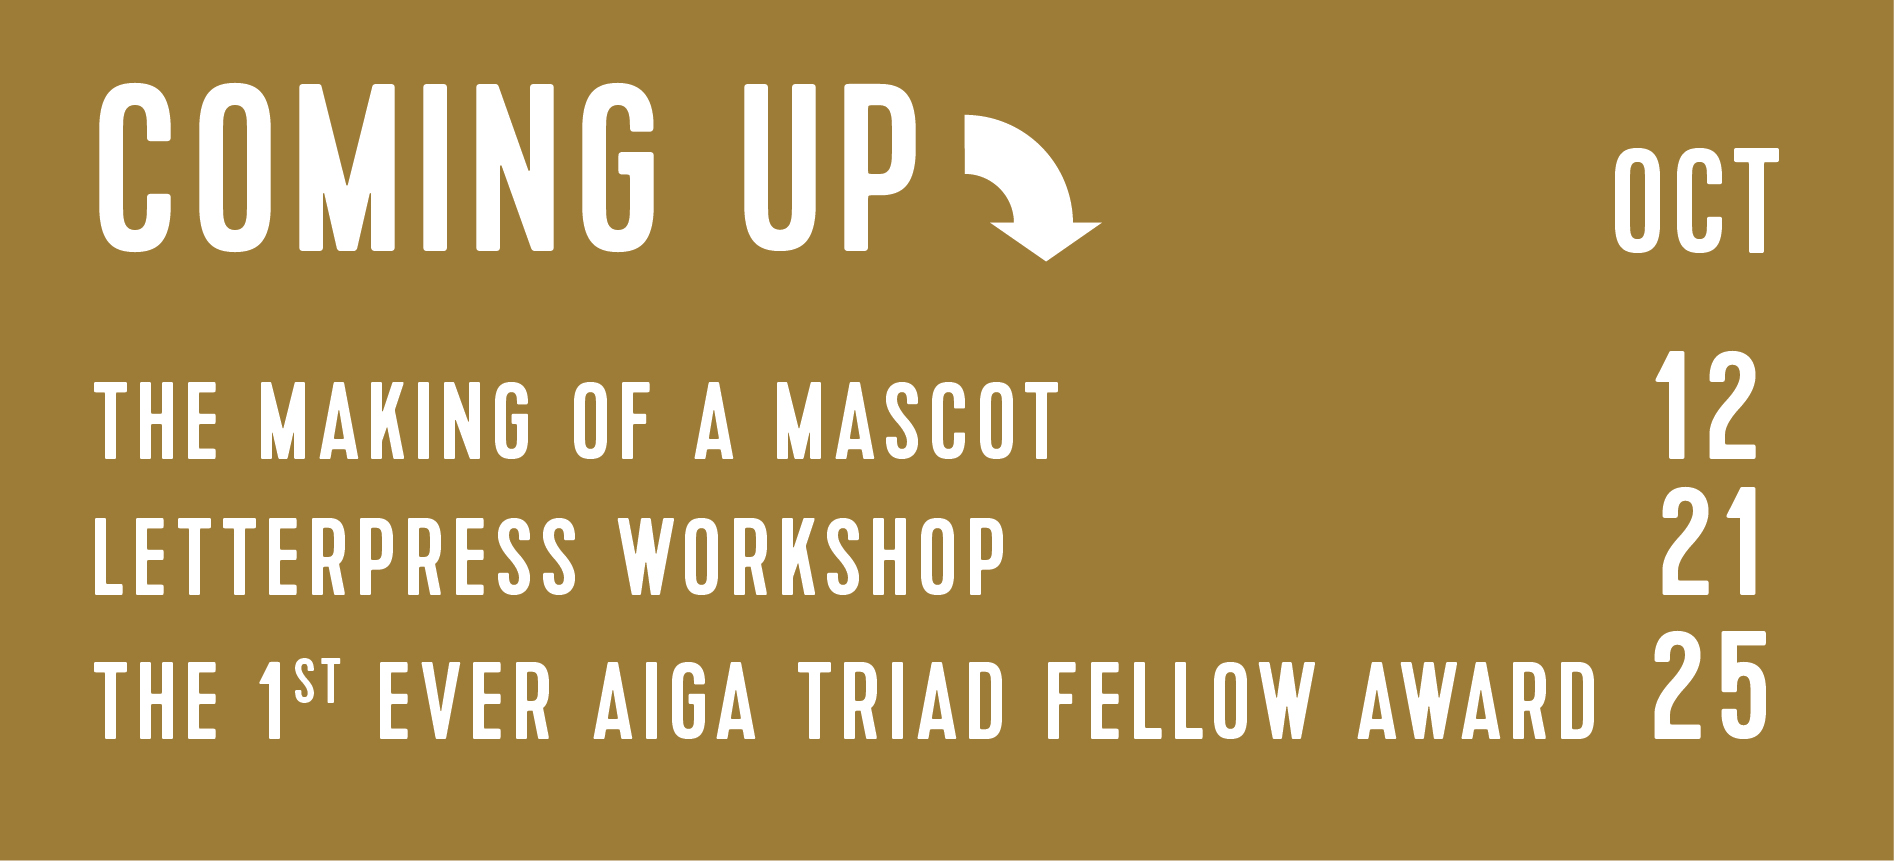 COMING UP: The Making of a Mascot (Oct12) Letterpress Workshop (Oct21) The 1st Ever AIGA Triad Fellow Award (Oct25)